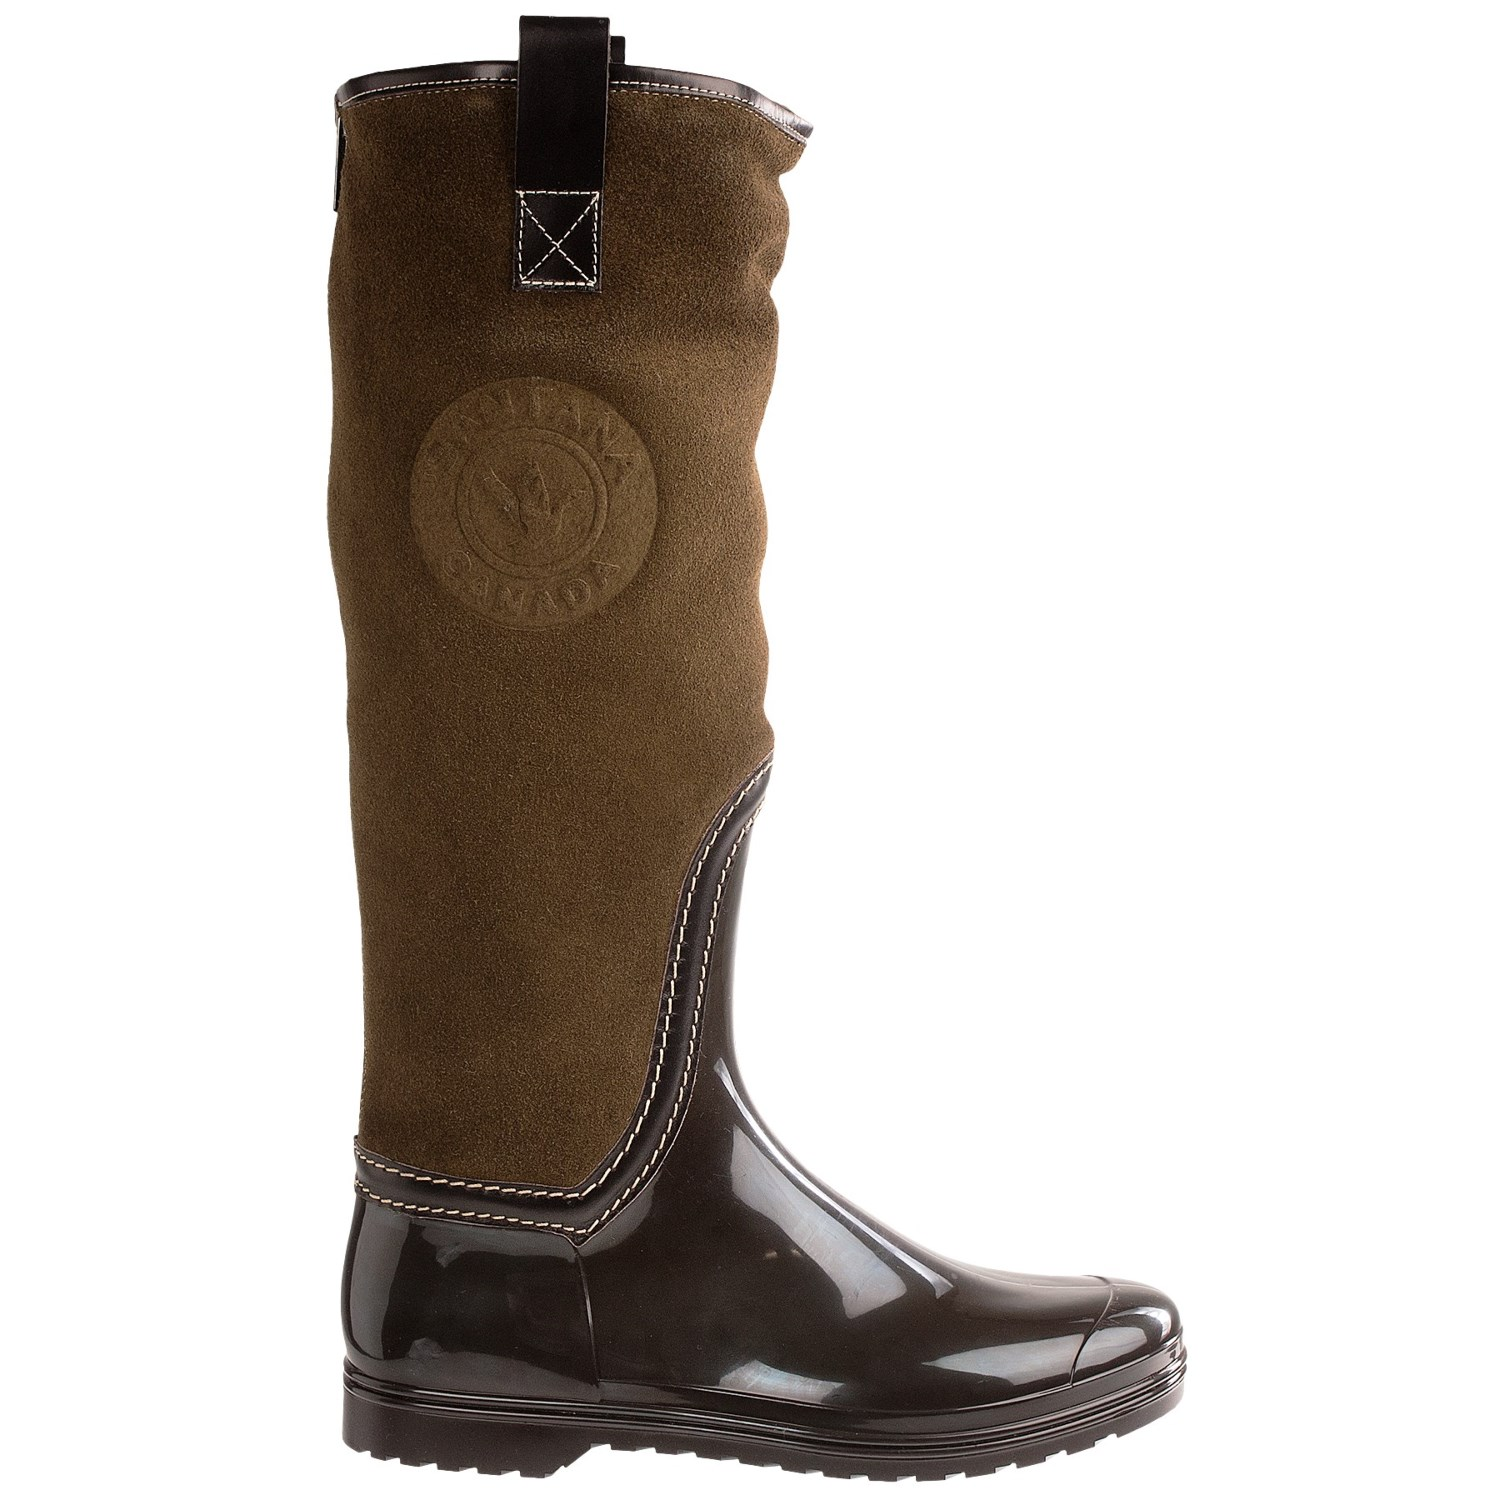 THE MEN'S BOOT COLLECTION